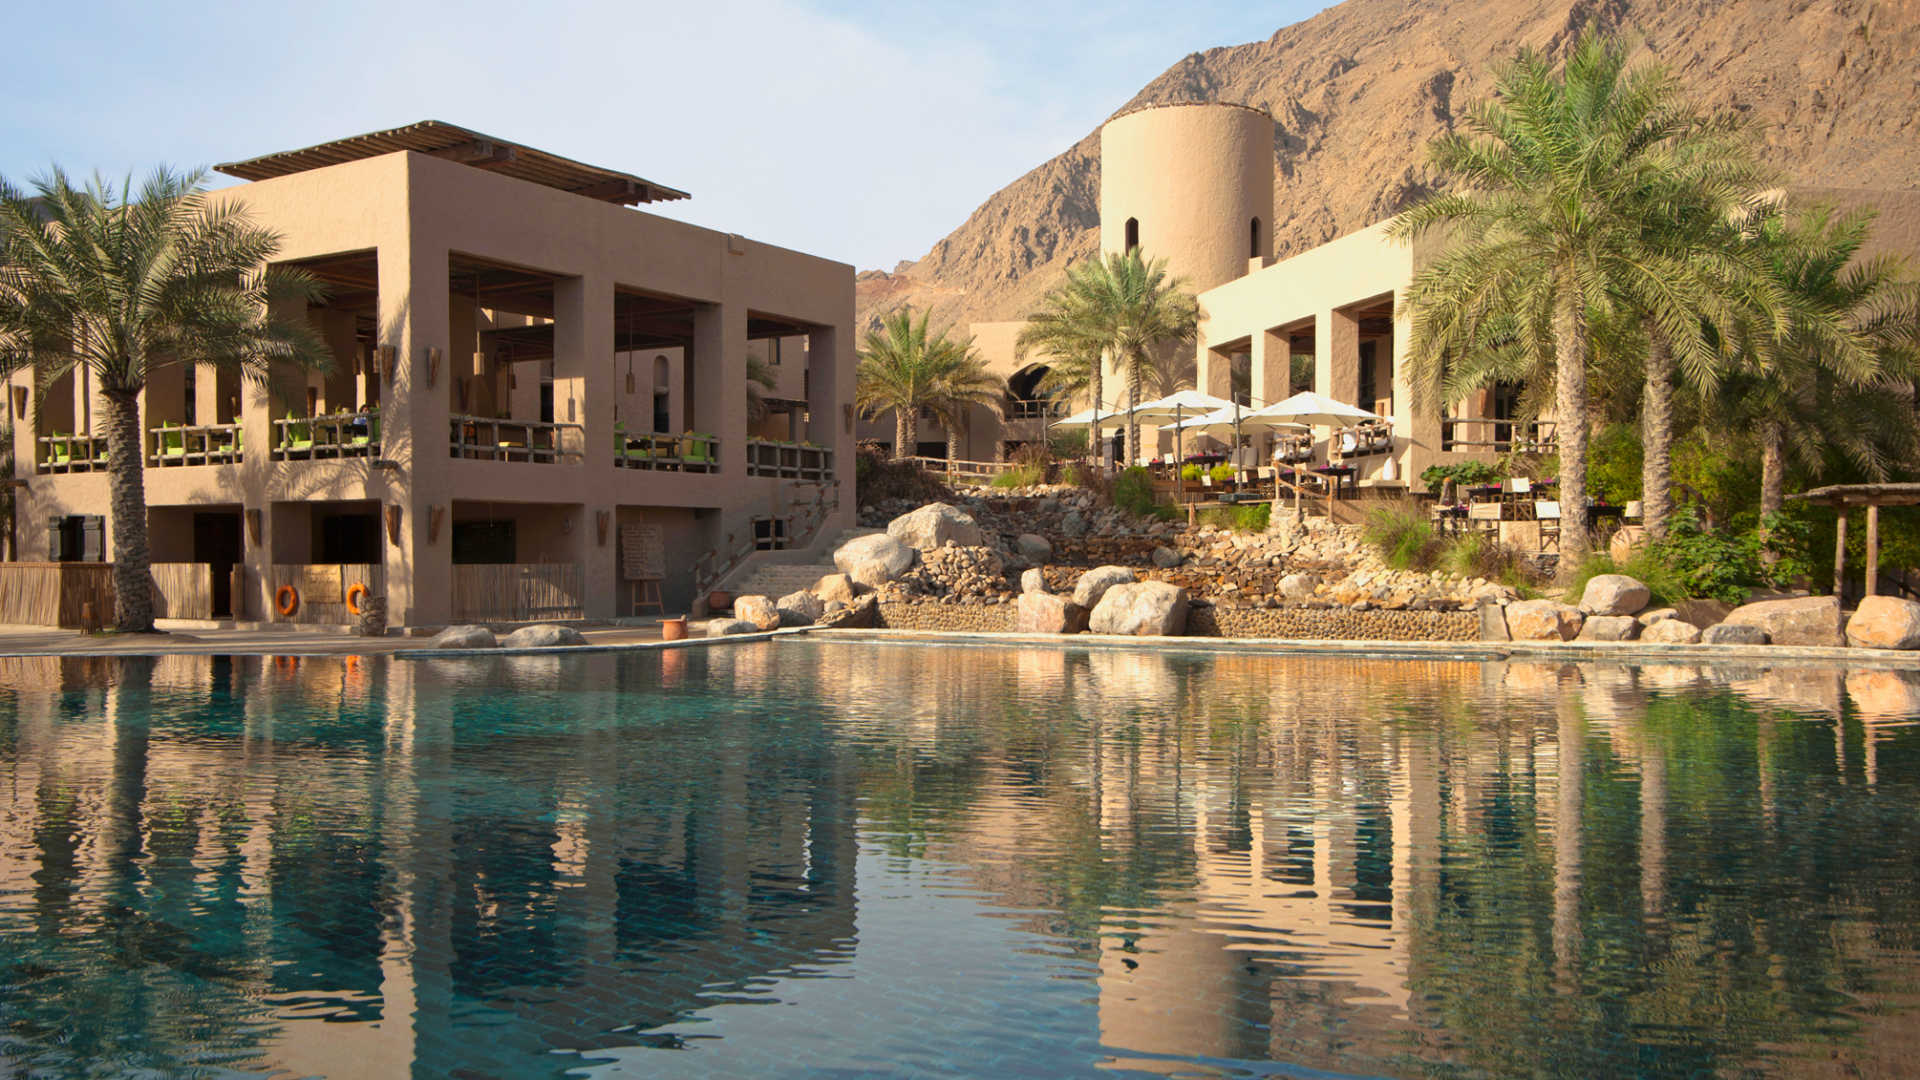 Does Oman Have The Best 2 Hotels In The World?  Backpackerlee. Organizing Kitchen Cabinets. How To Paint Oak Kitchen Cabinets. Home Depot Custom Kitchen Cabinets. How To Paint Your Kitchen Cabinets. Kitchen Cabinets Houzz. Kitchen Cabinets Second Hand. Deep Kitchen Cabinets. How To Build A Kitchen Pantry Cabinet